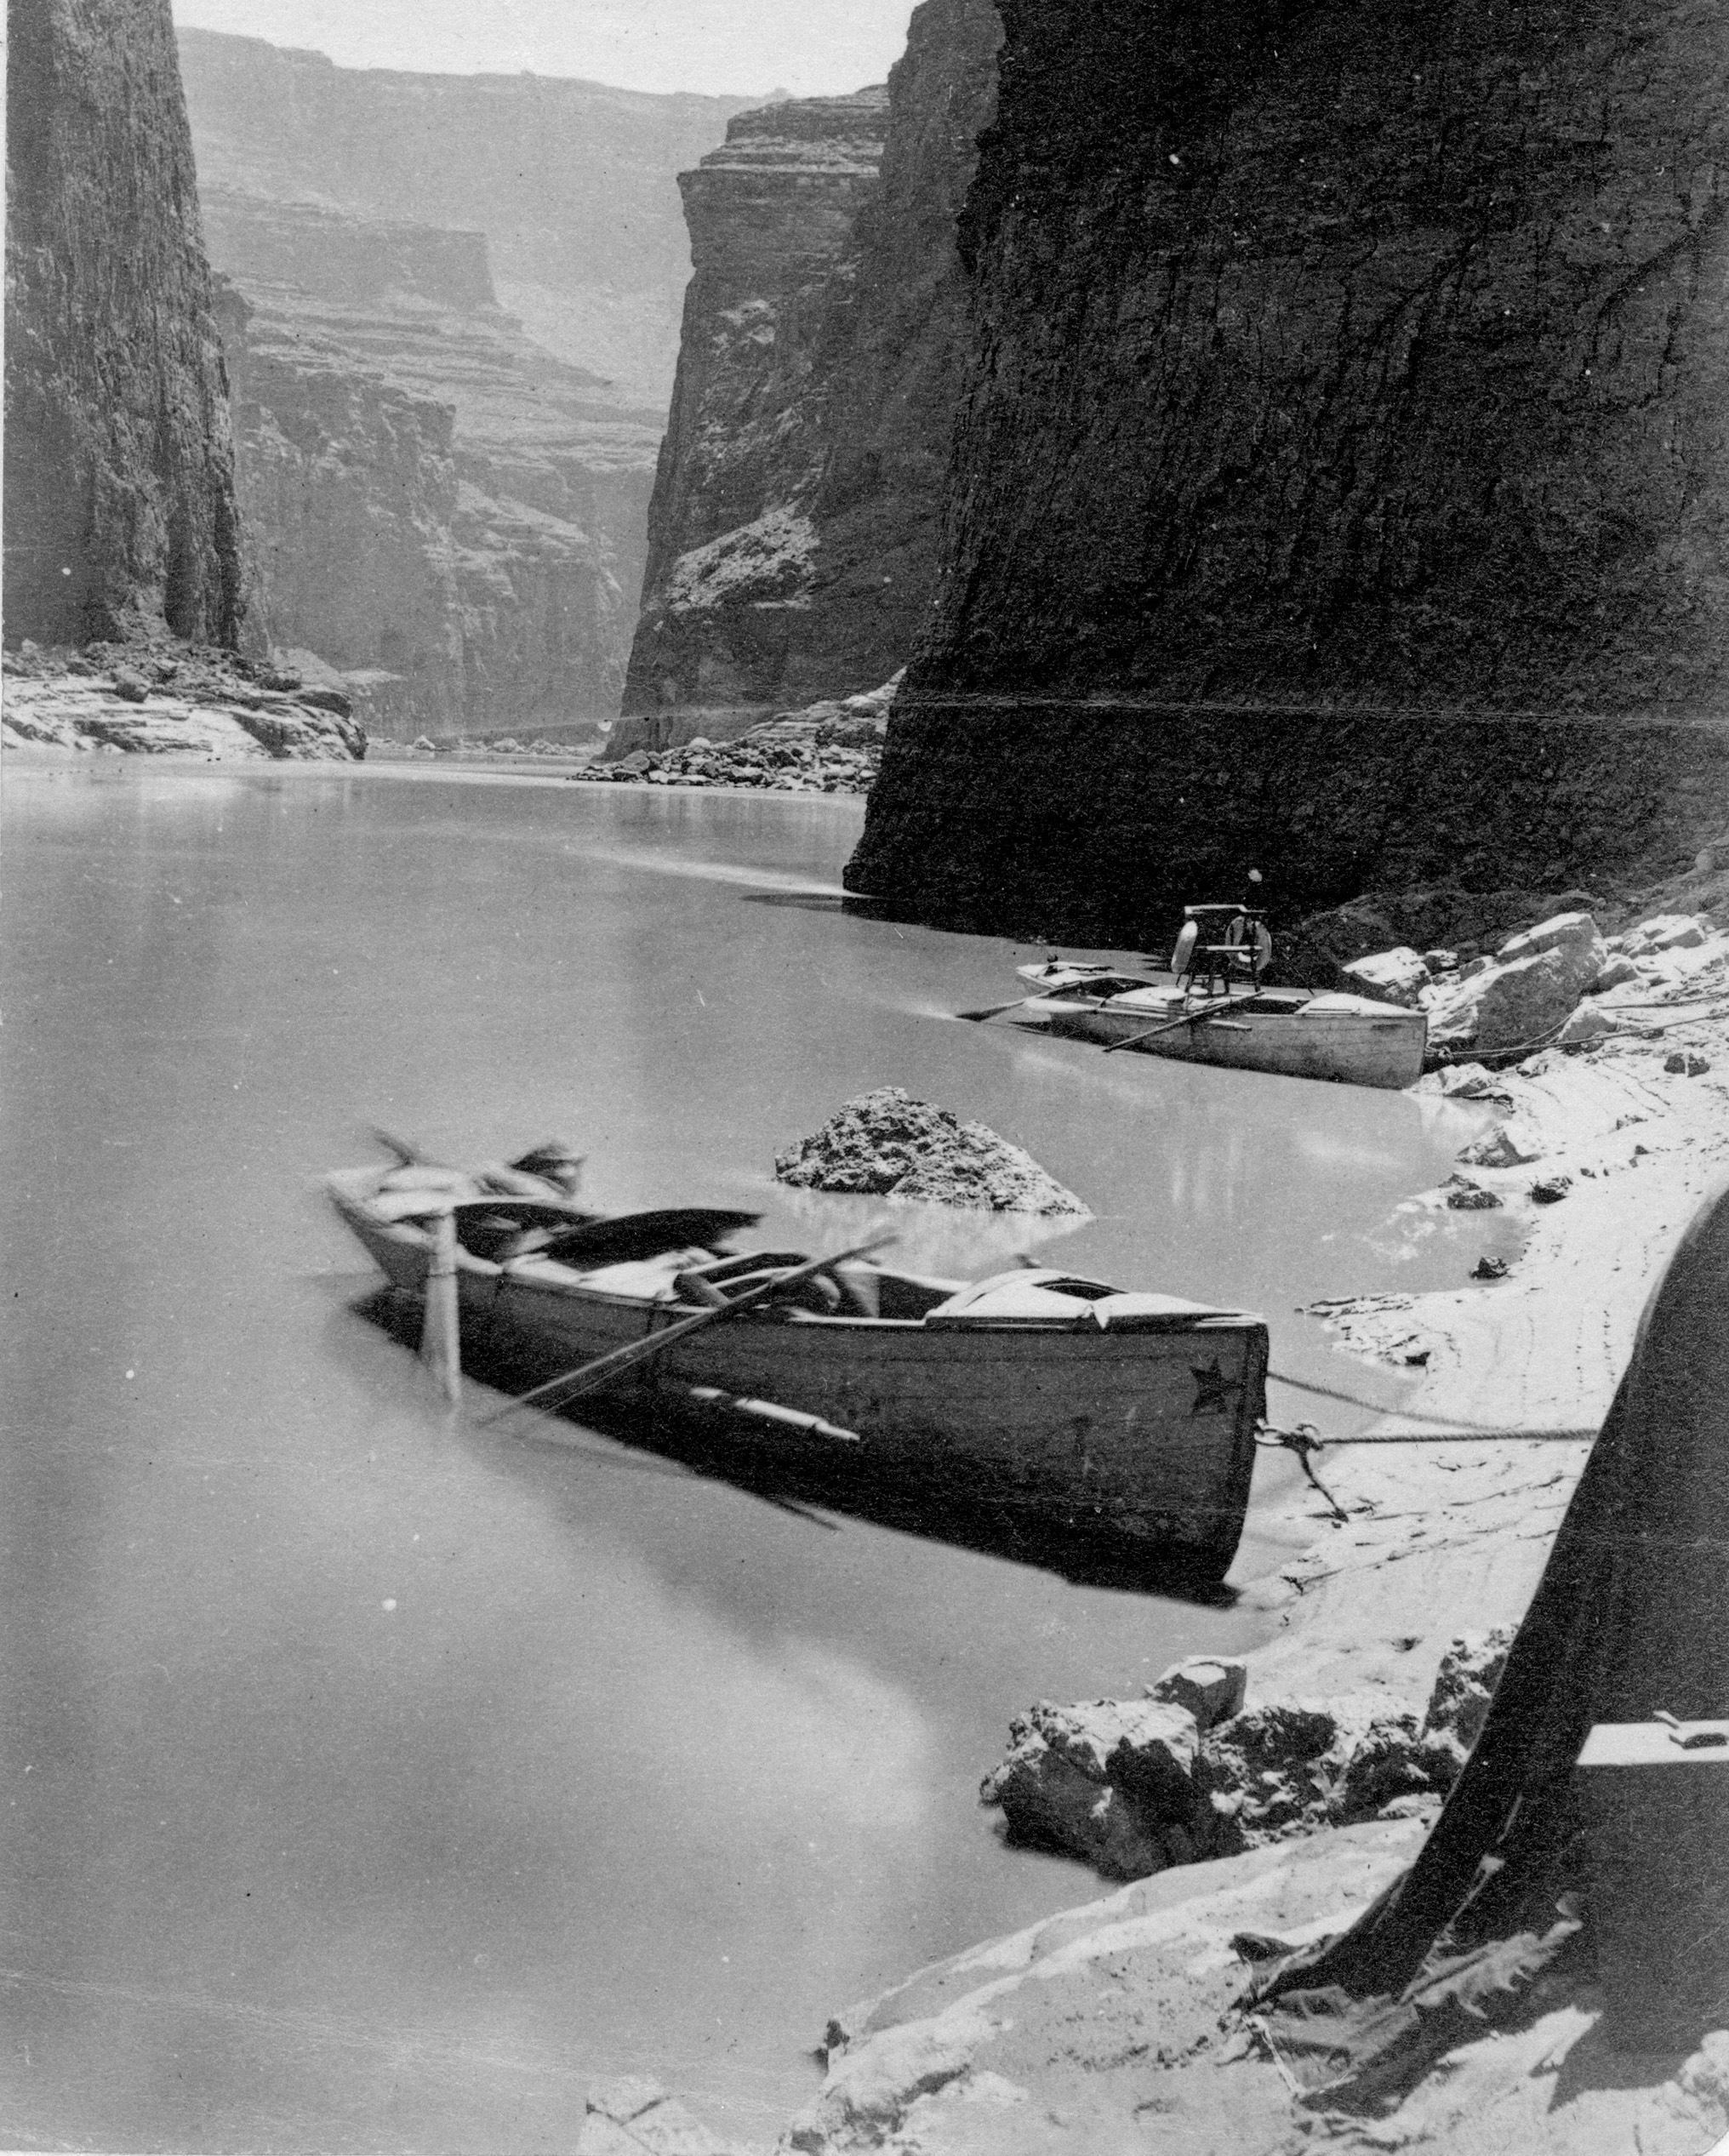 Boats from the Powell expedition in the 1800s.